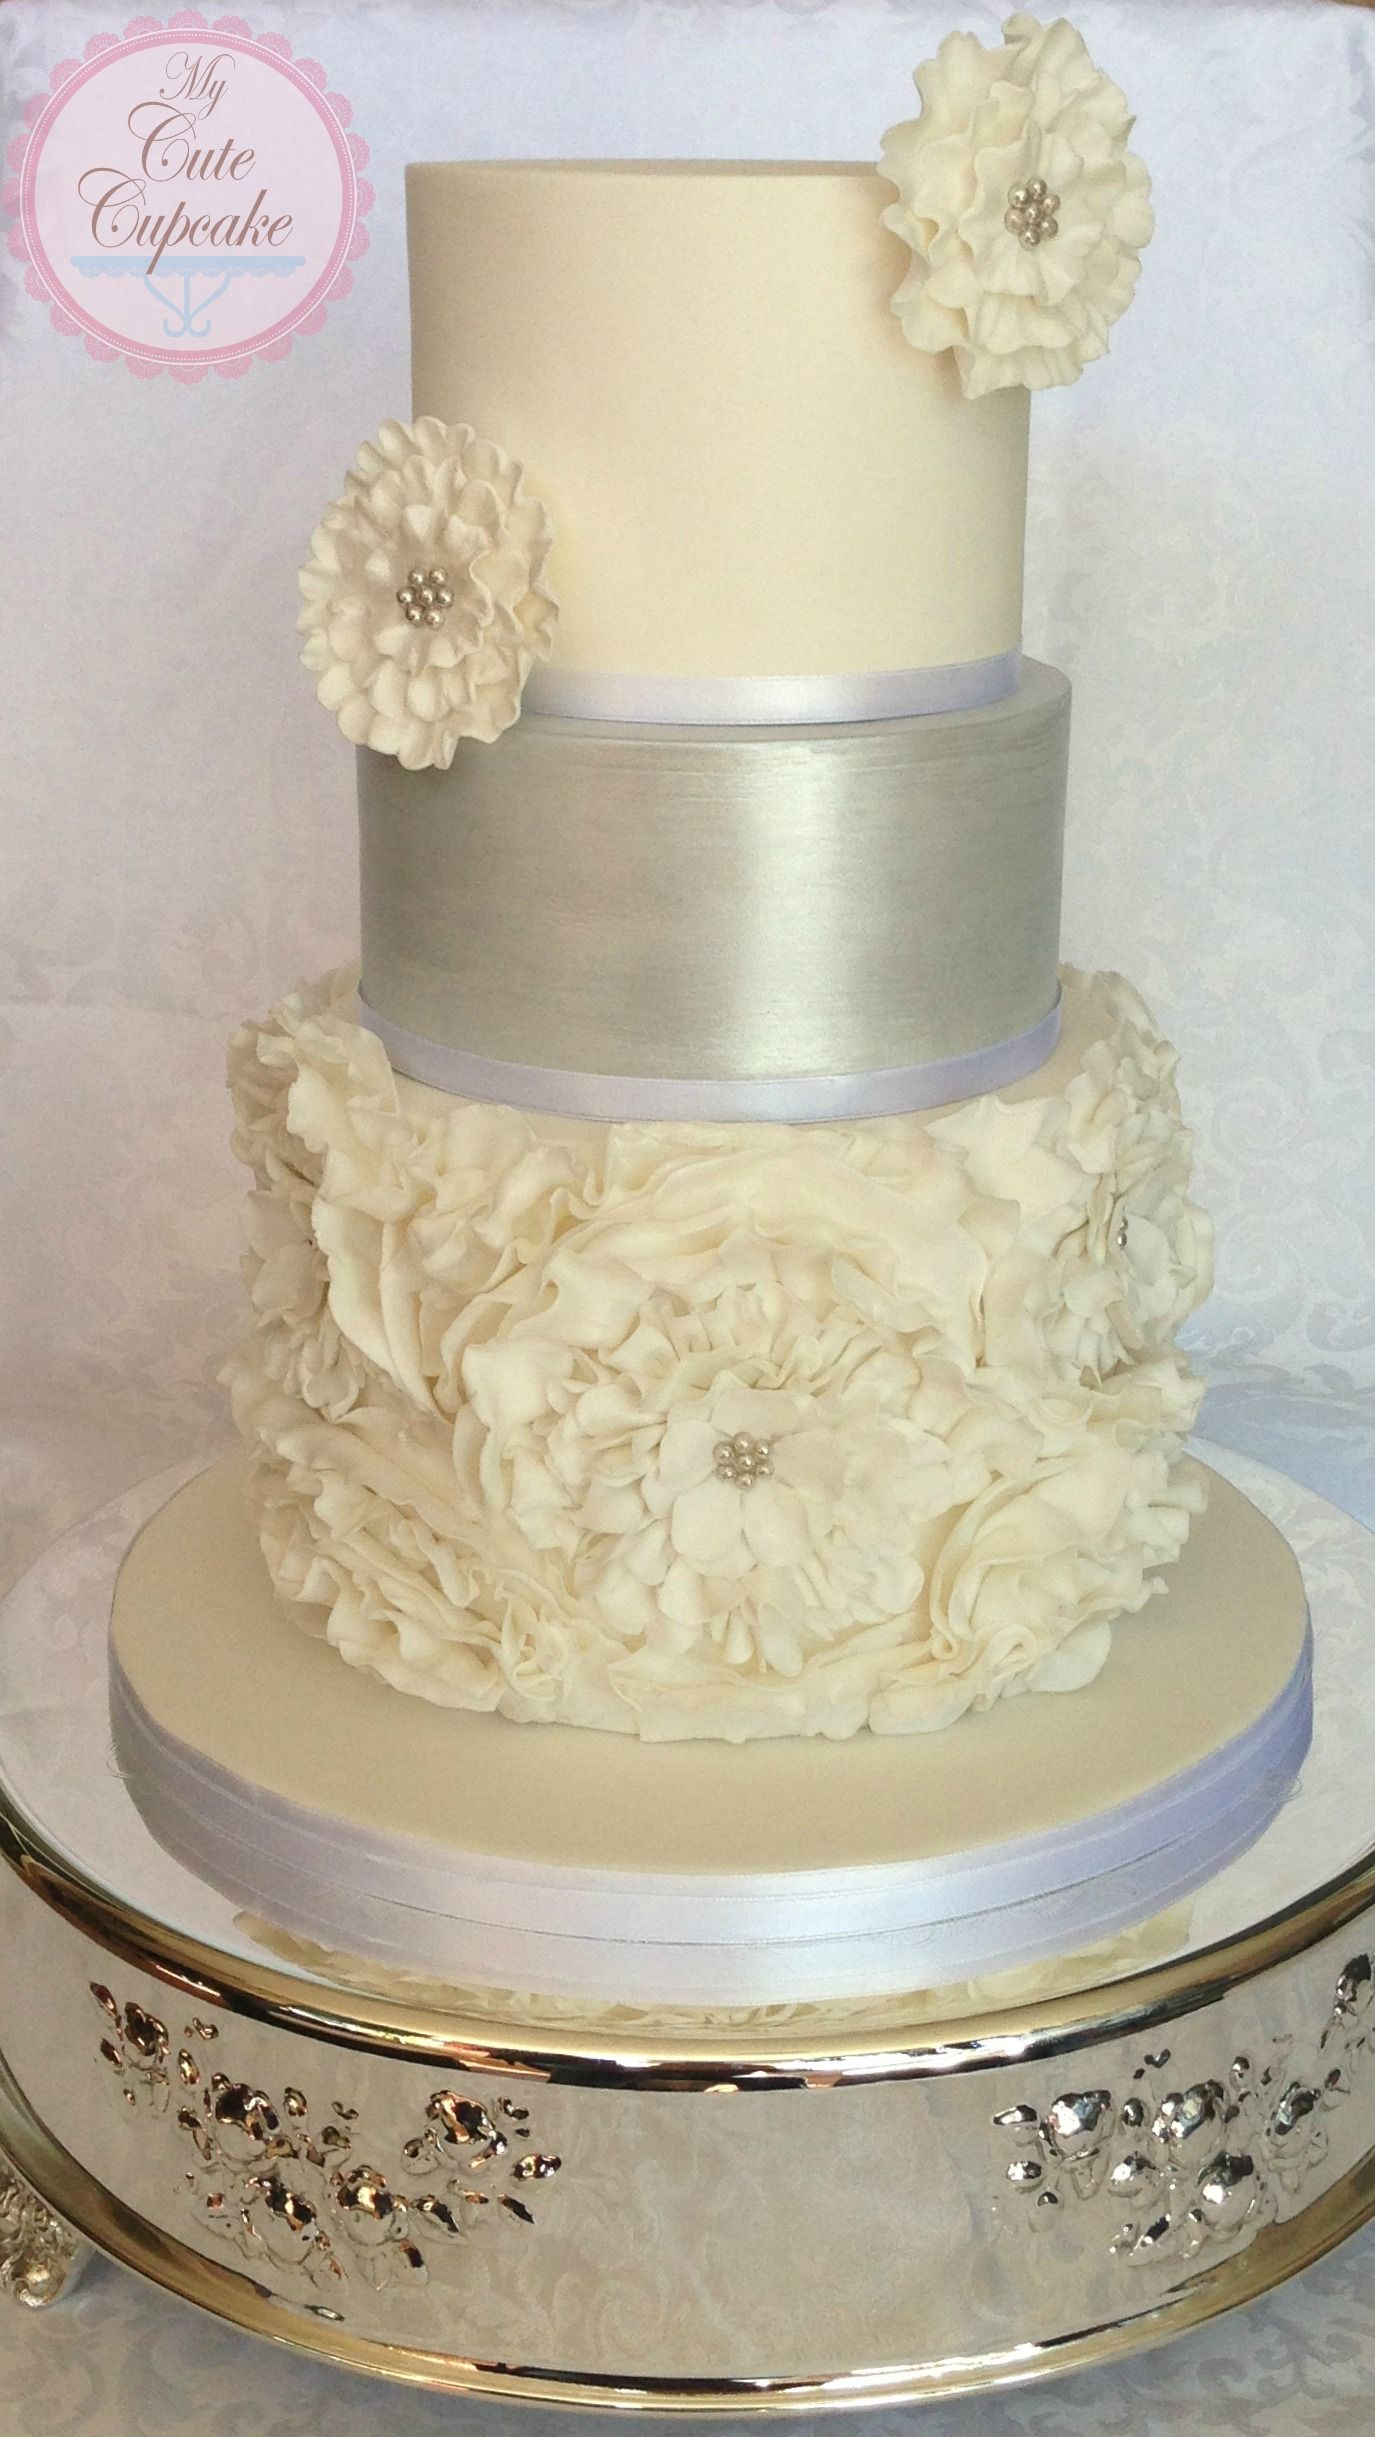 Round Wedding Cakes - White & Silver Ruffled Wedding Cake | cakes ...